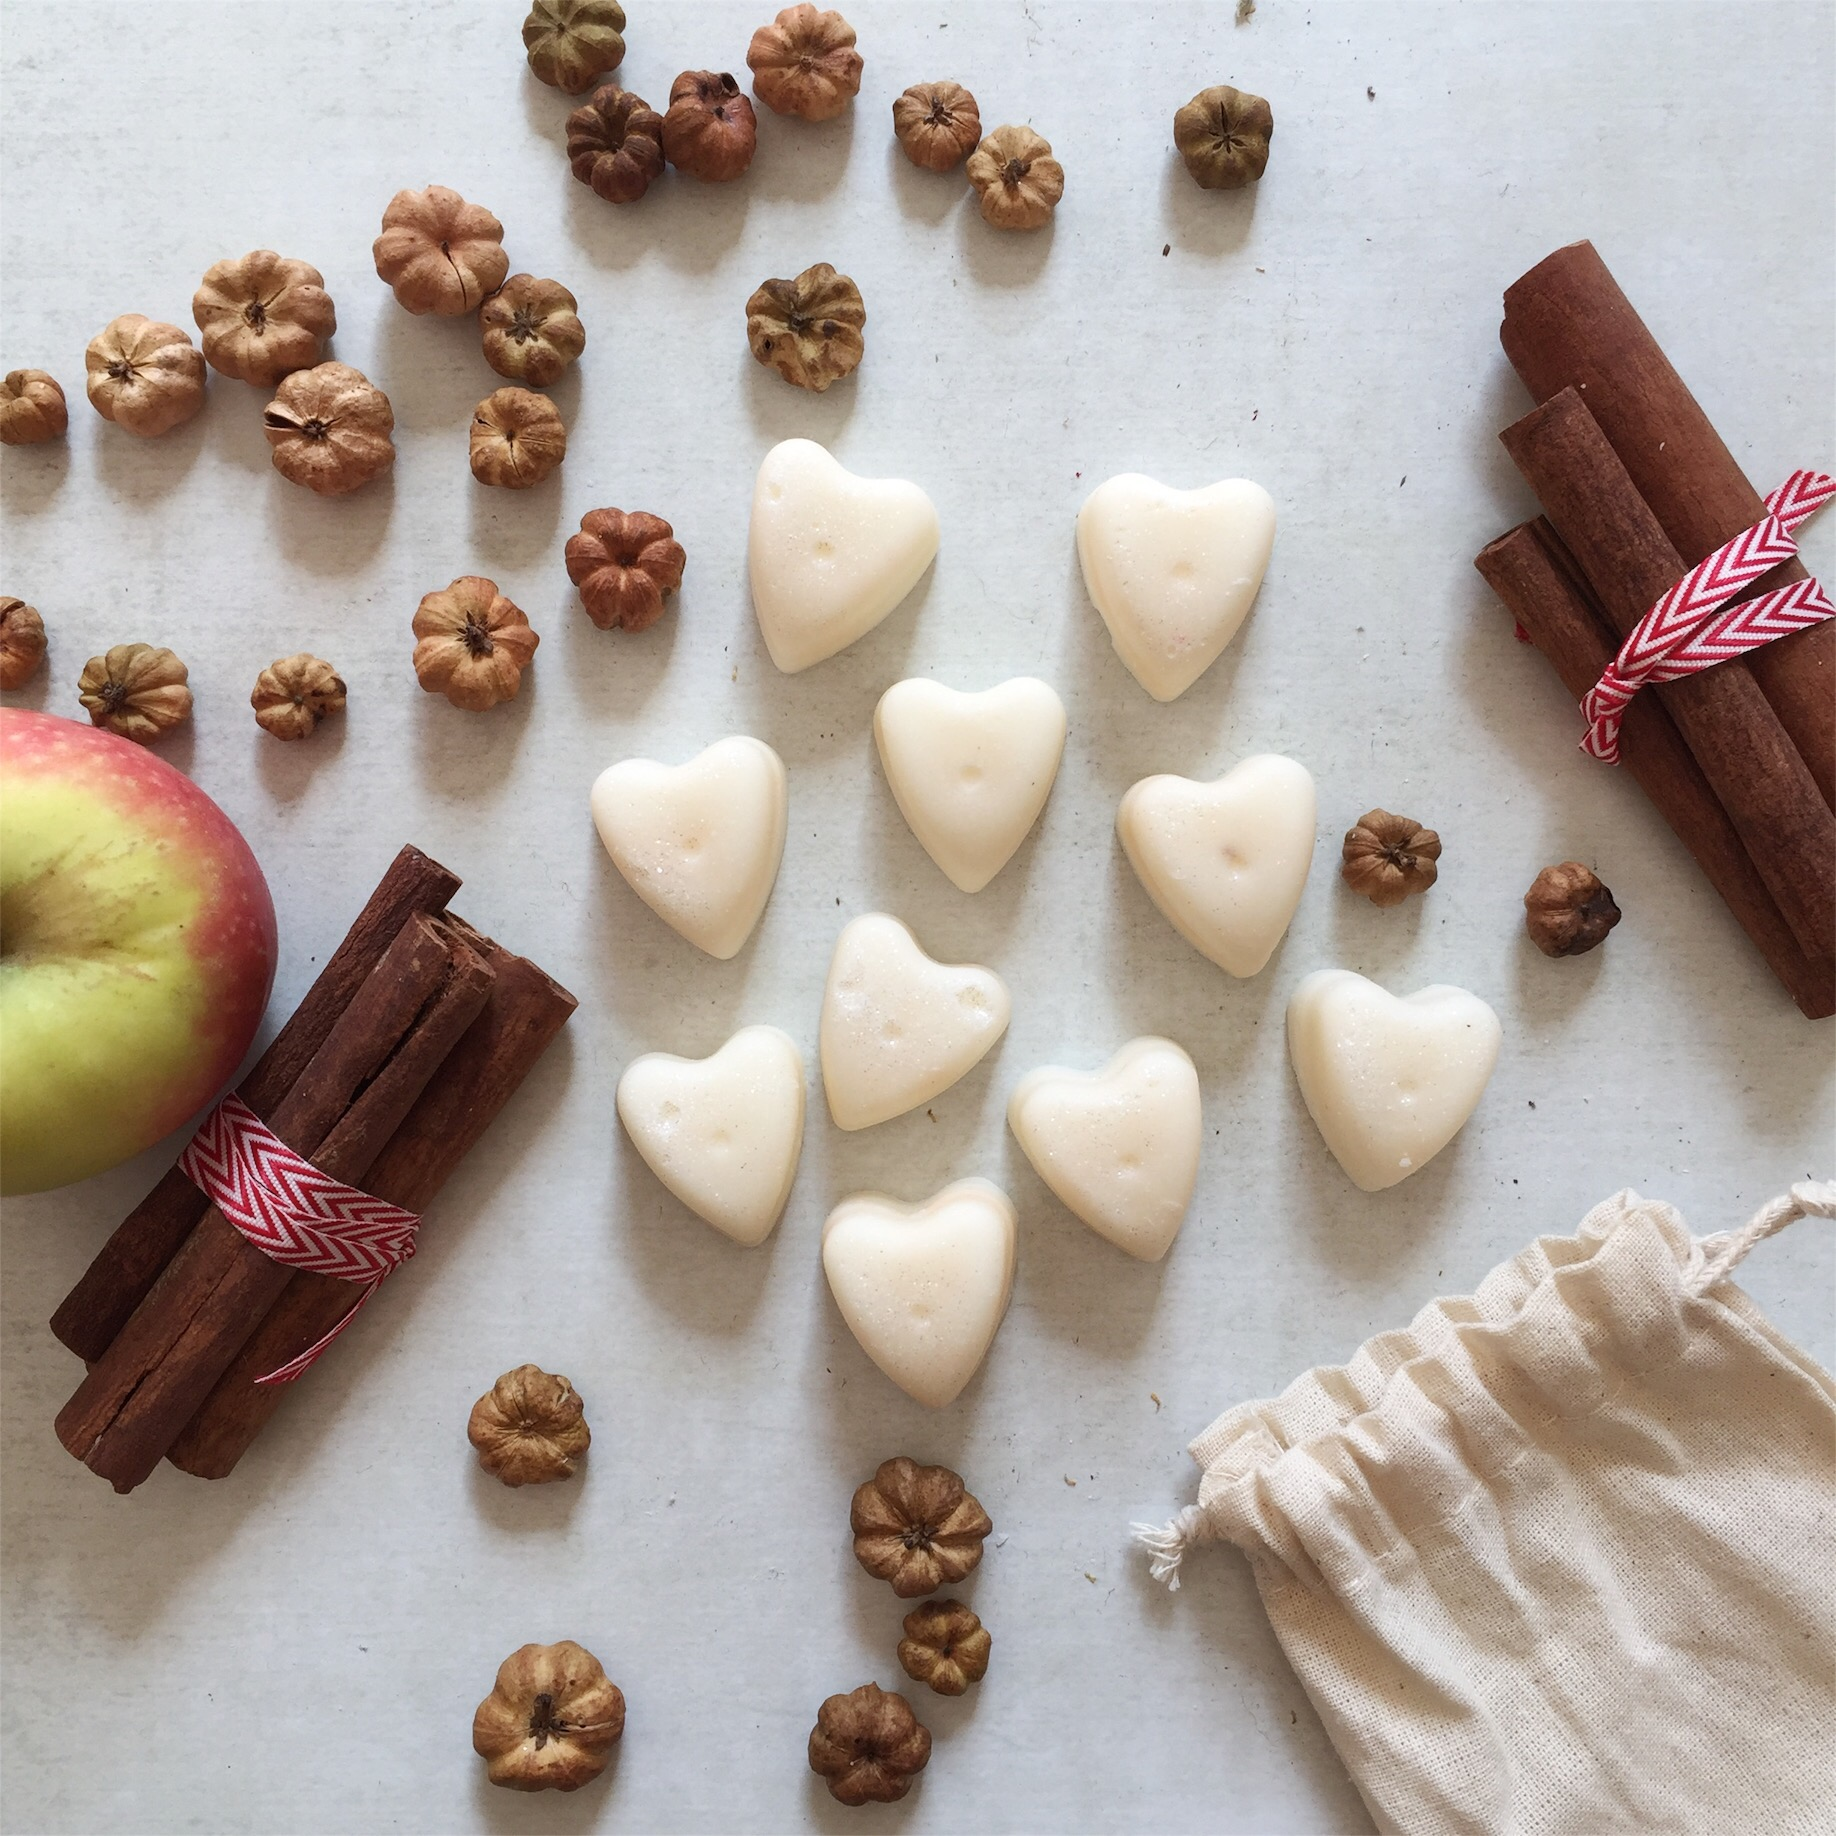 Sweet Baked Apple Spice Wax Melts